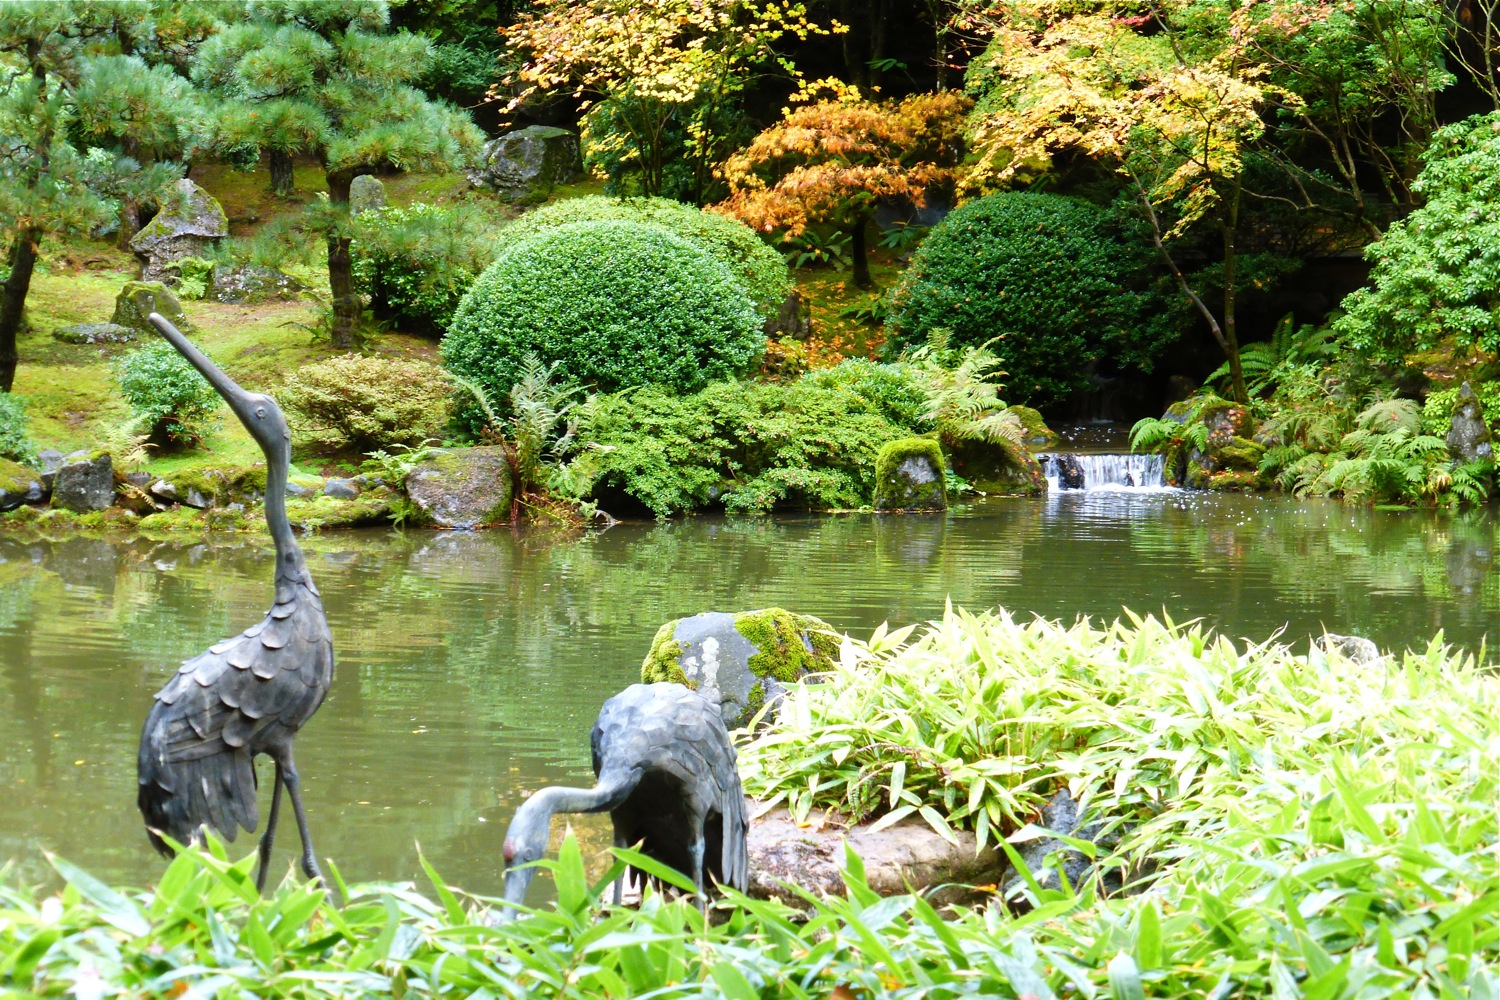 Lower Pond of the Strolling Pond Garden Portland Japanese Garden, stone cranes in Portland Japanese Garden